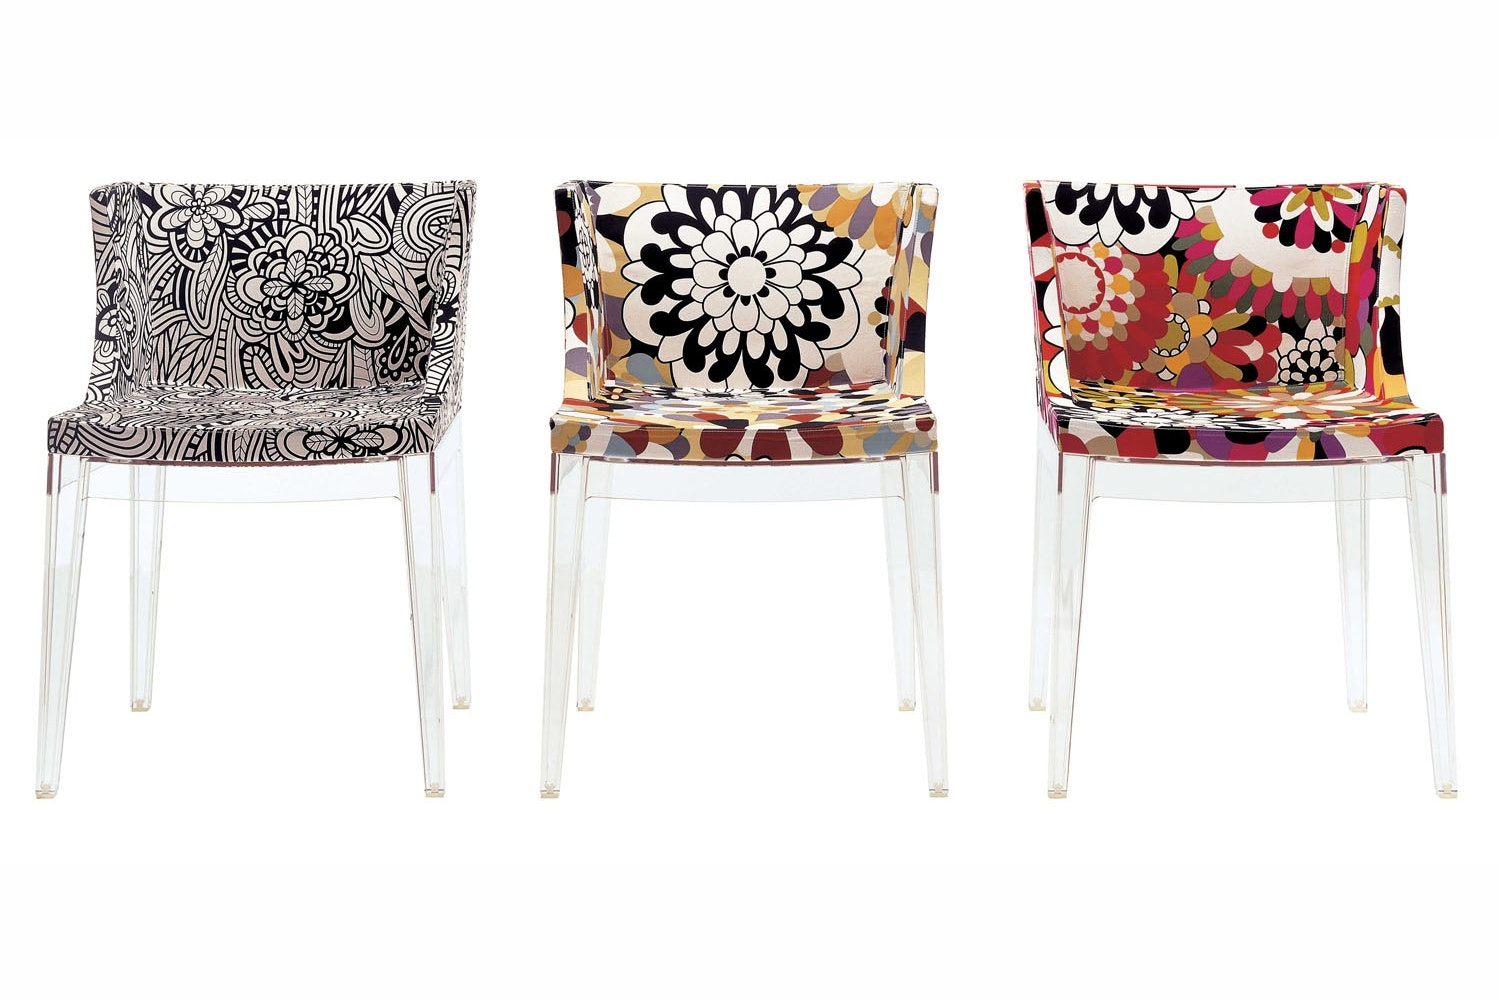 Mademoiselle Missoni Chair with Arms by Philippe Starck for Kartell